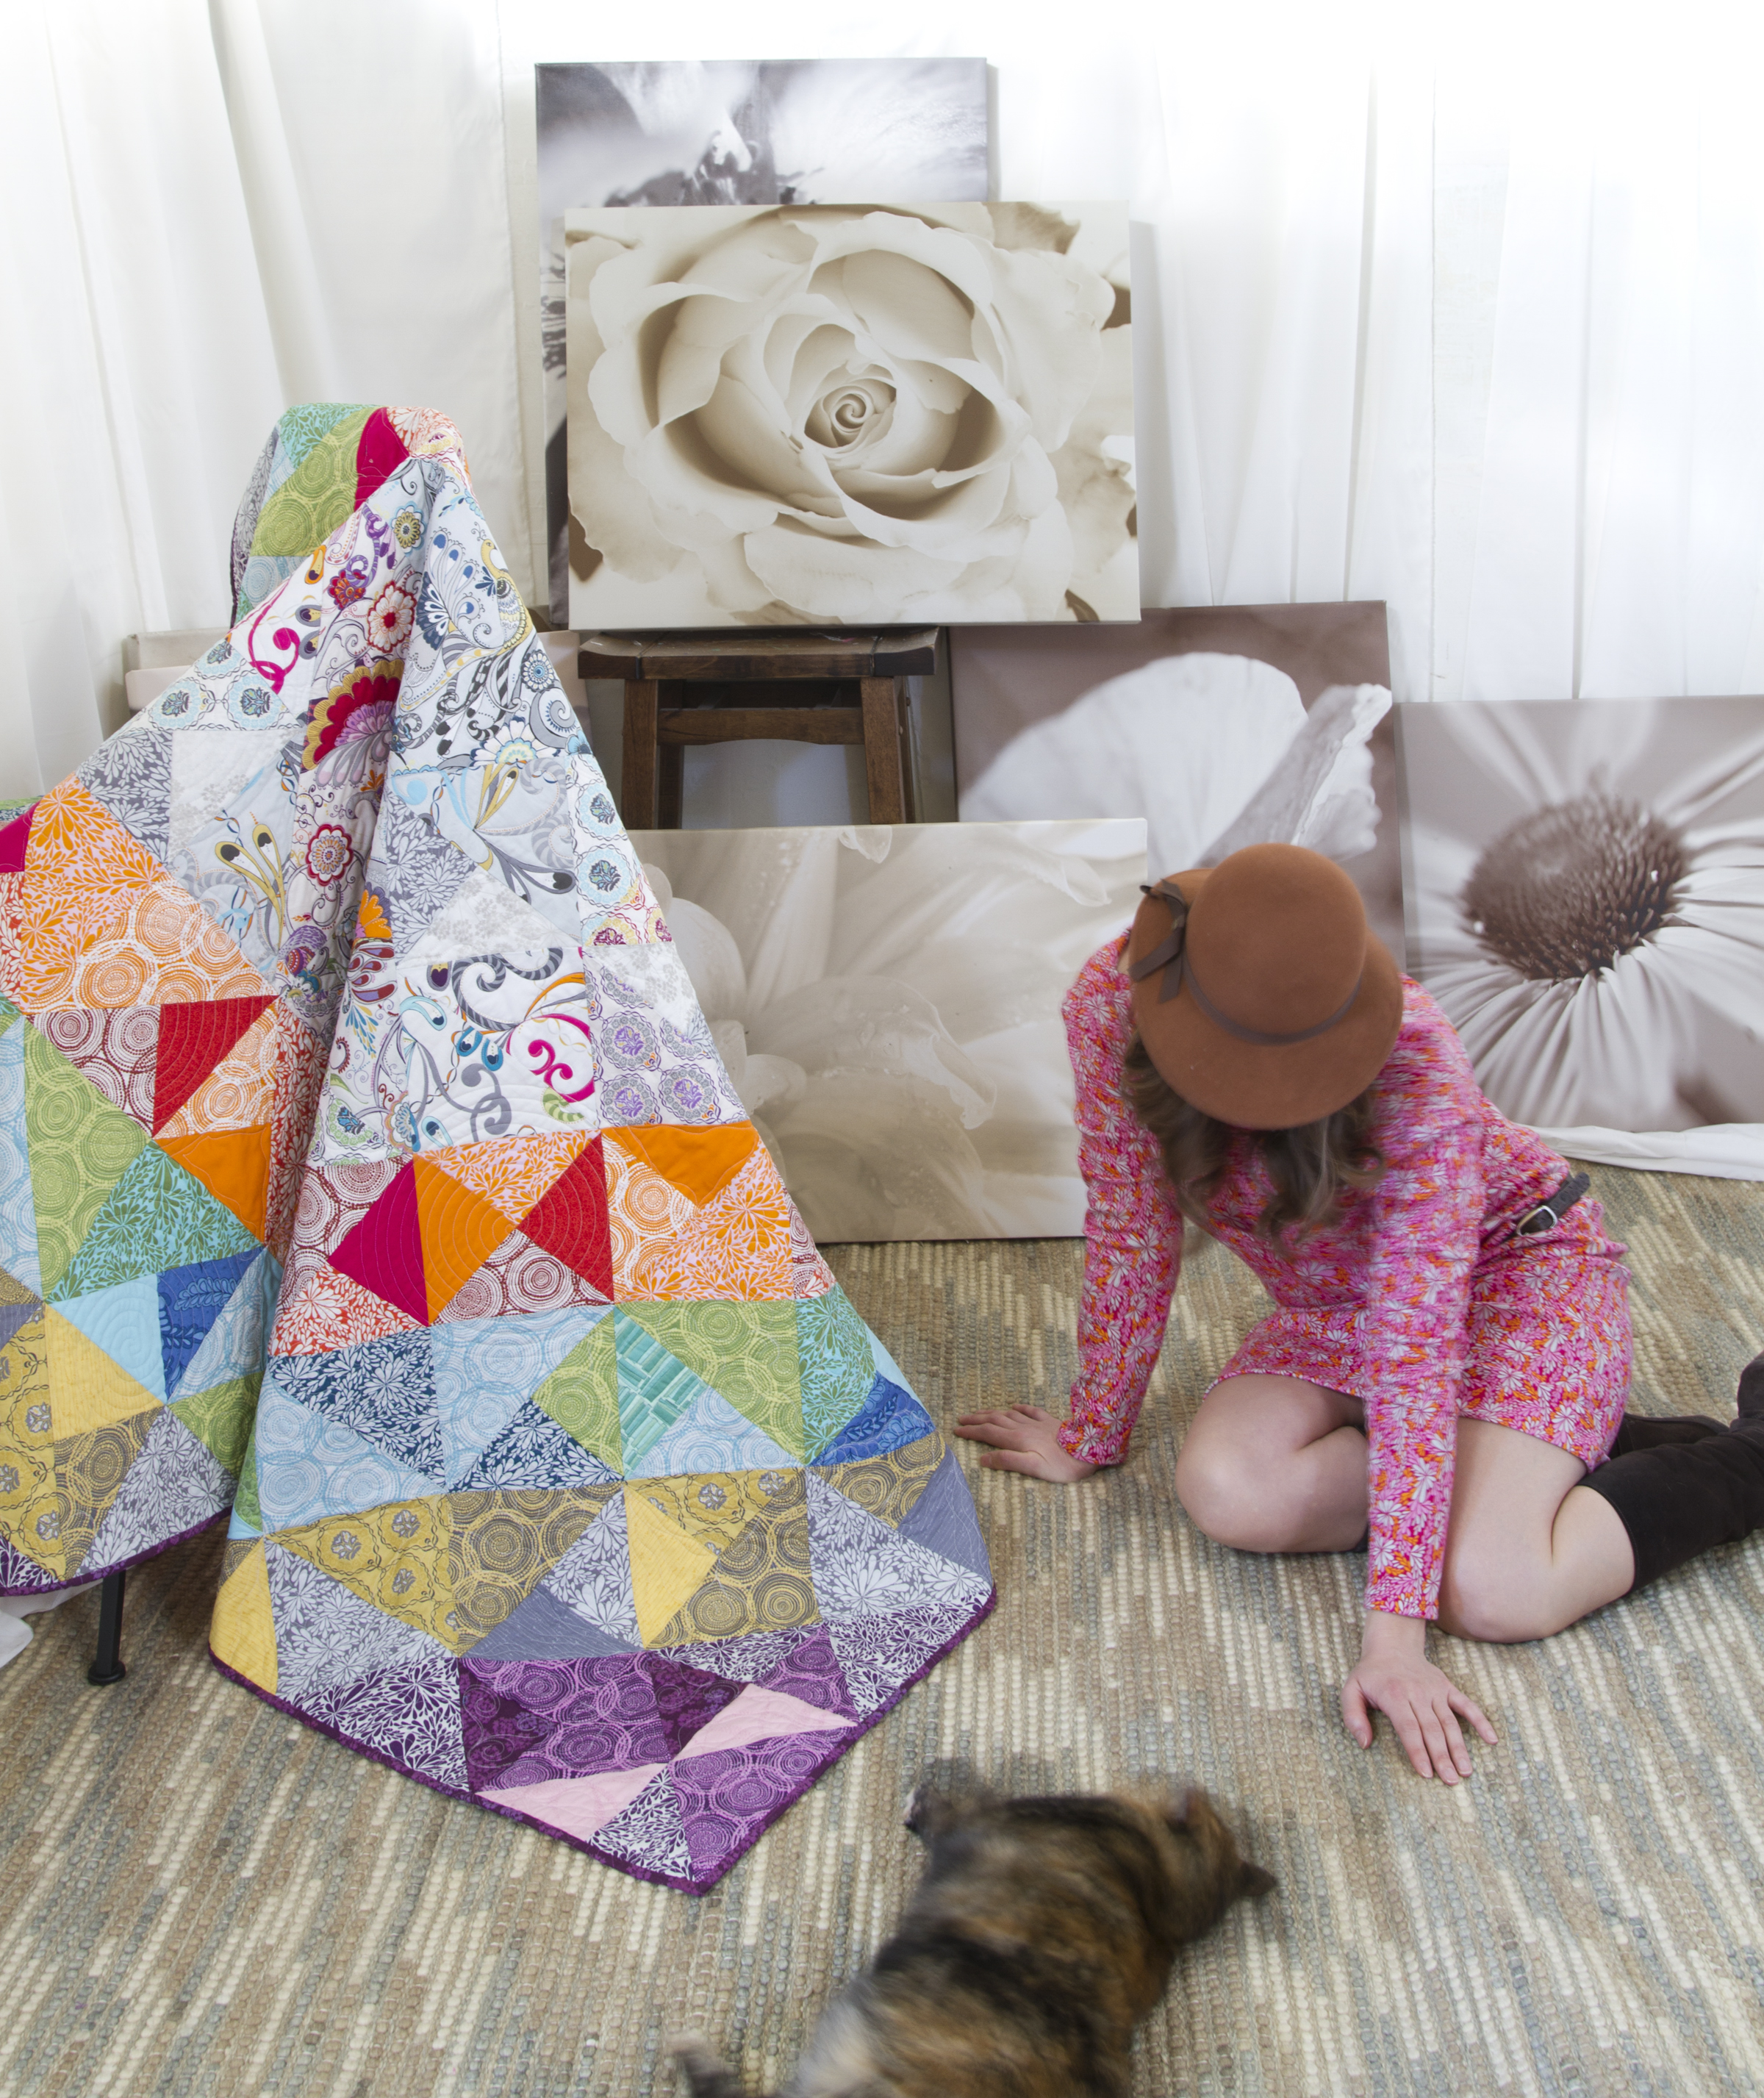 The Sondy dress pattern is available through The Stitchin' Post. The Journey Quilt pattern will be available as a free download from Robert Kaufman Fabrics. later this spring.